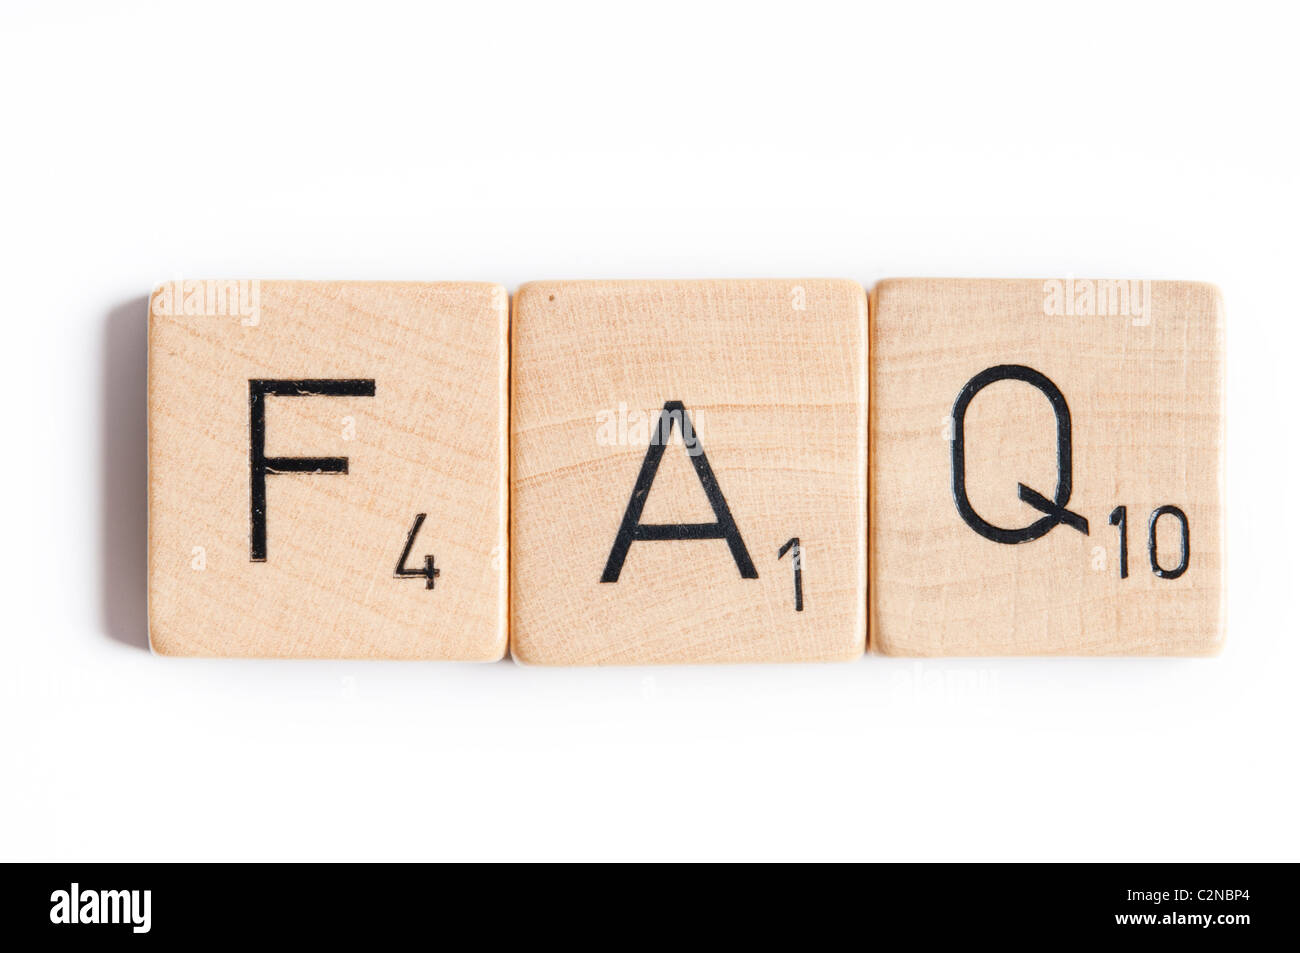 Frequently Asked Questions concept - Stock Image